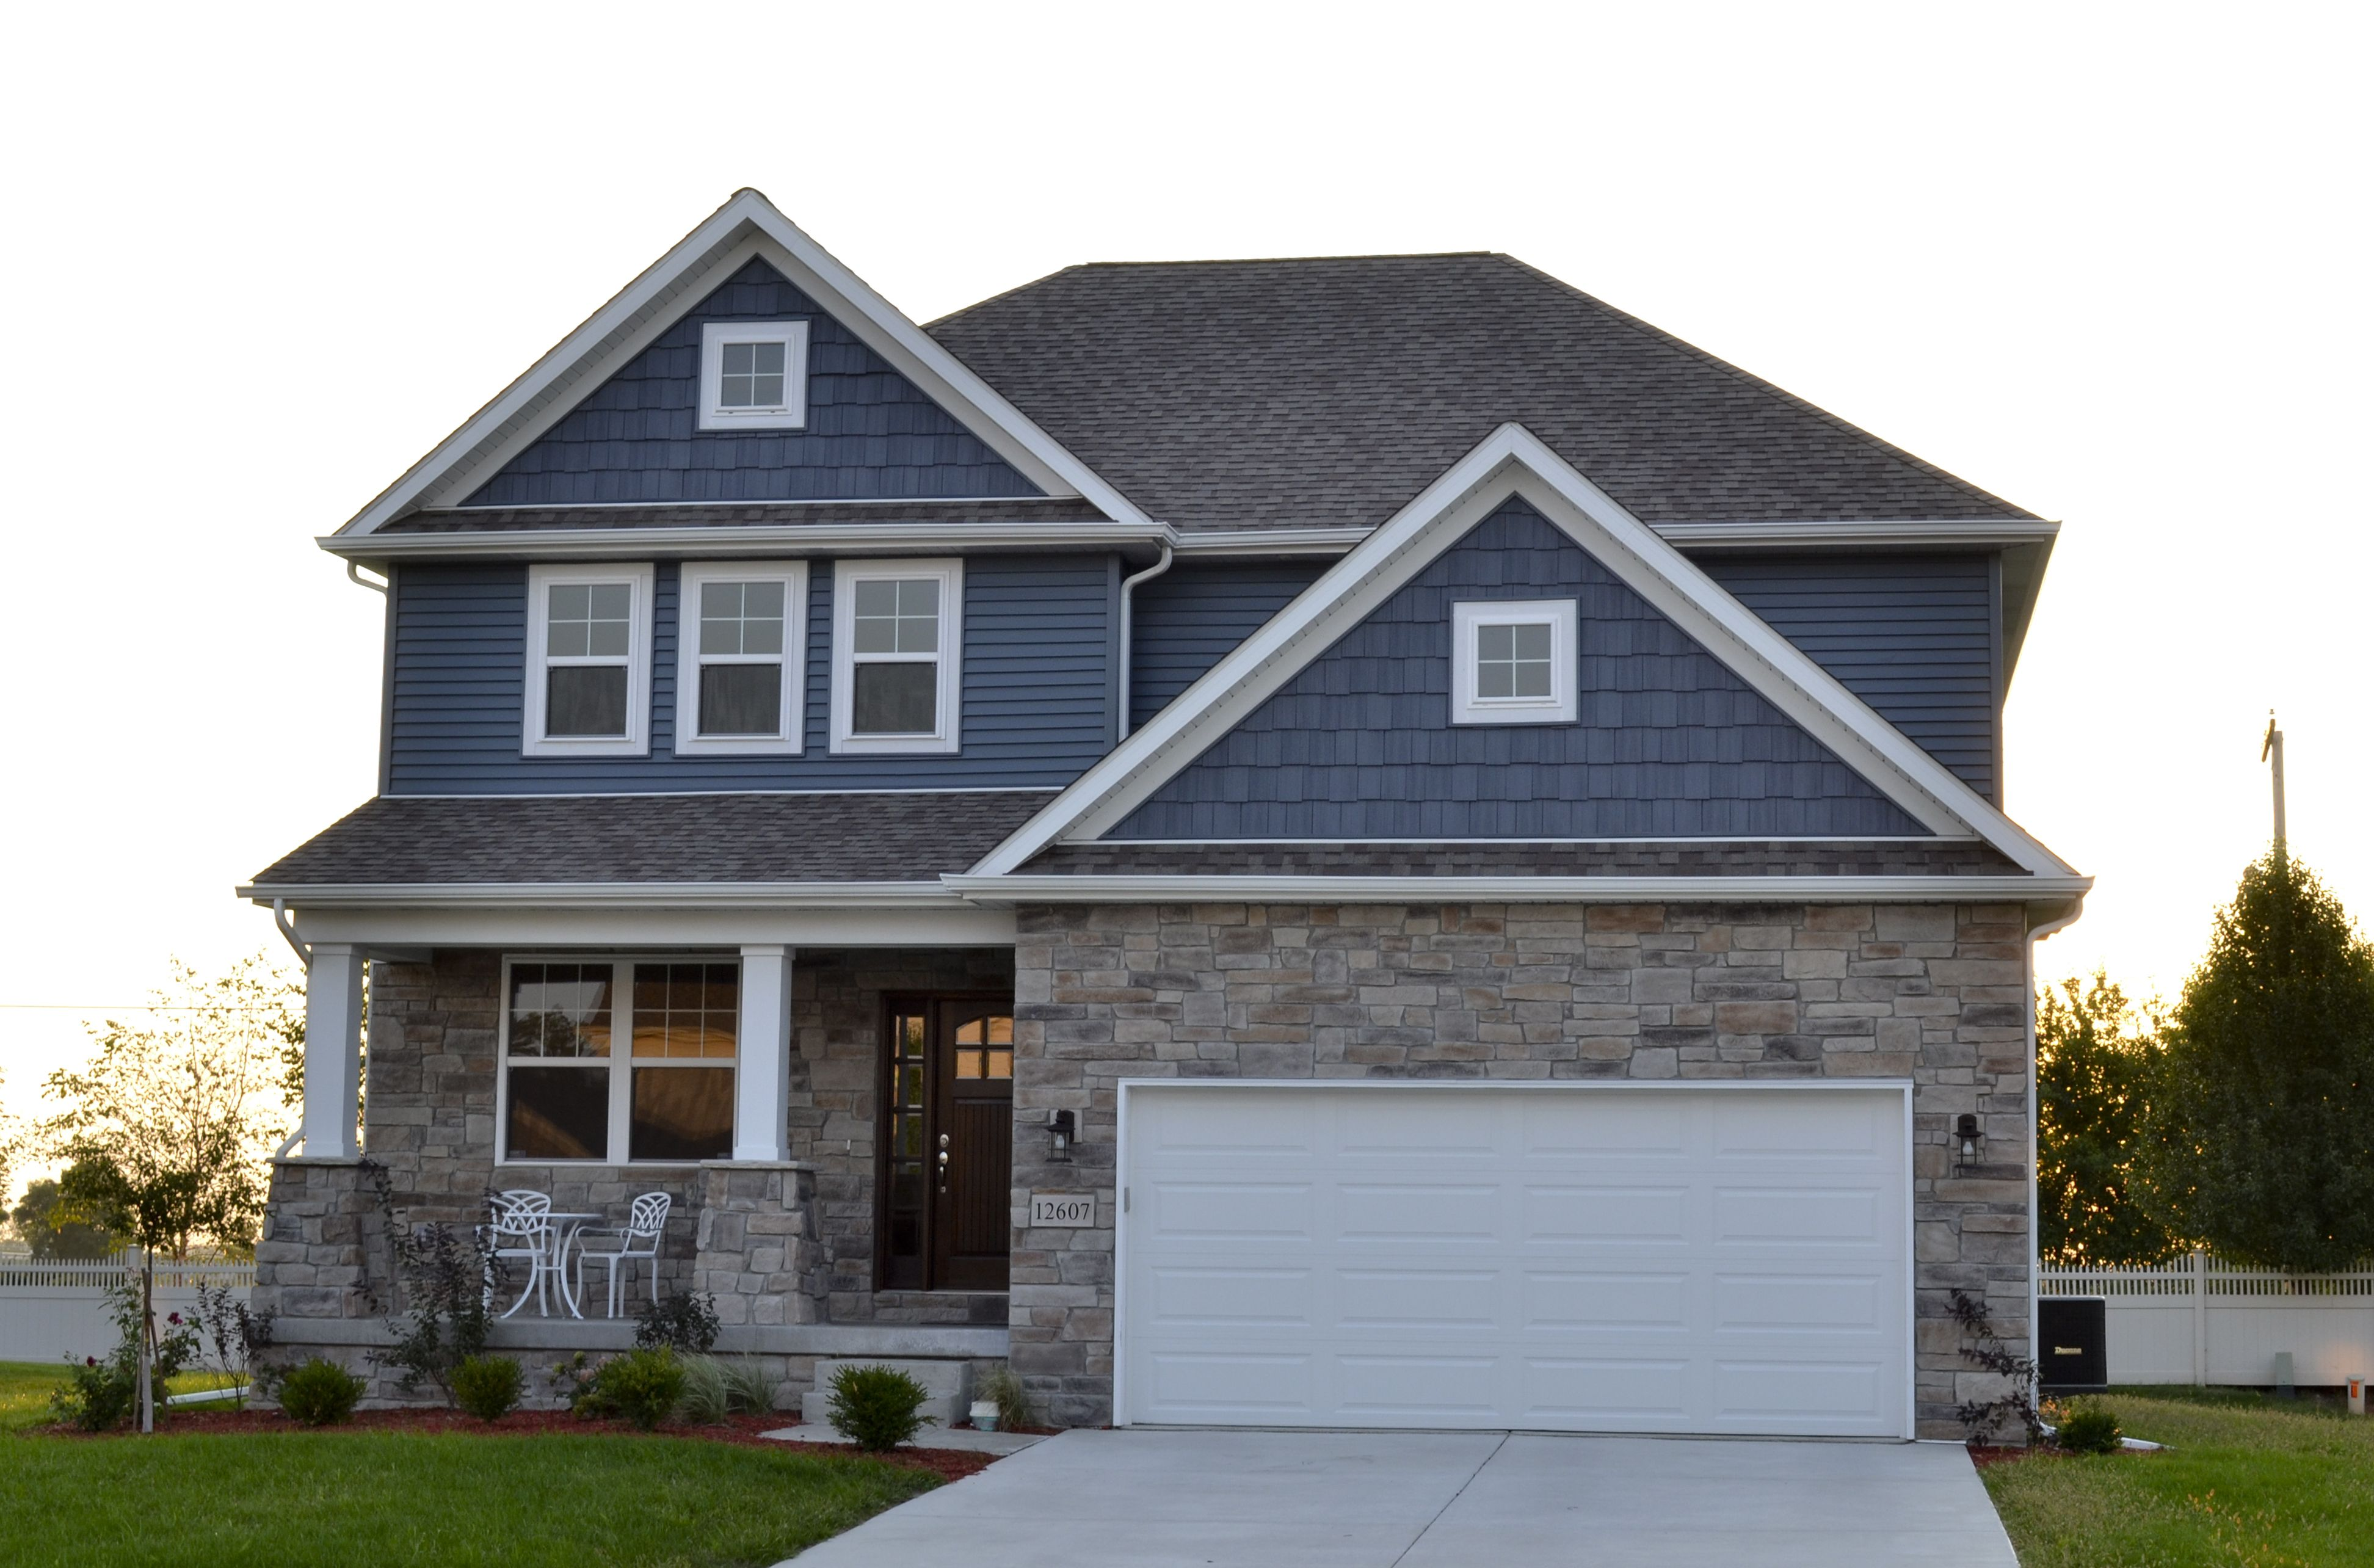 Cute blue two story - by Steiner Homes LTD. | House colors ...